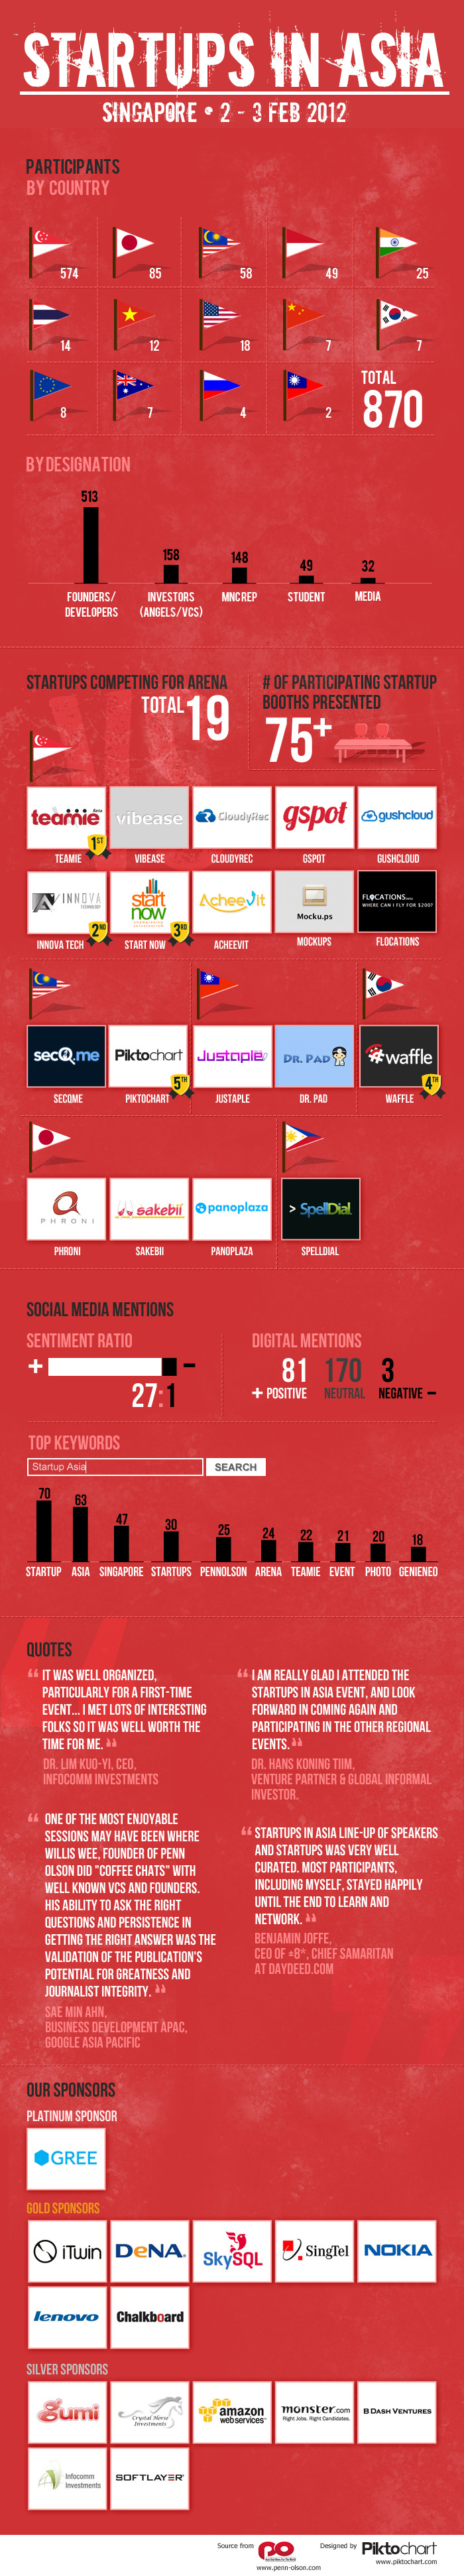 Startups in Singapore 2012 infographic